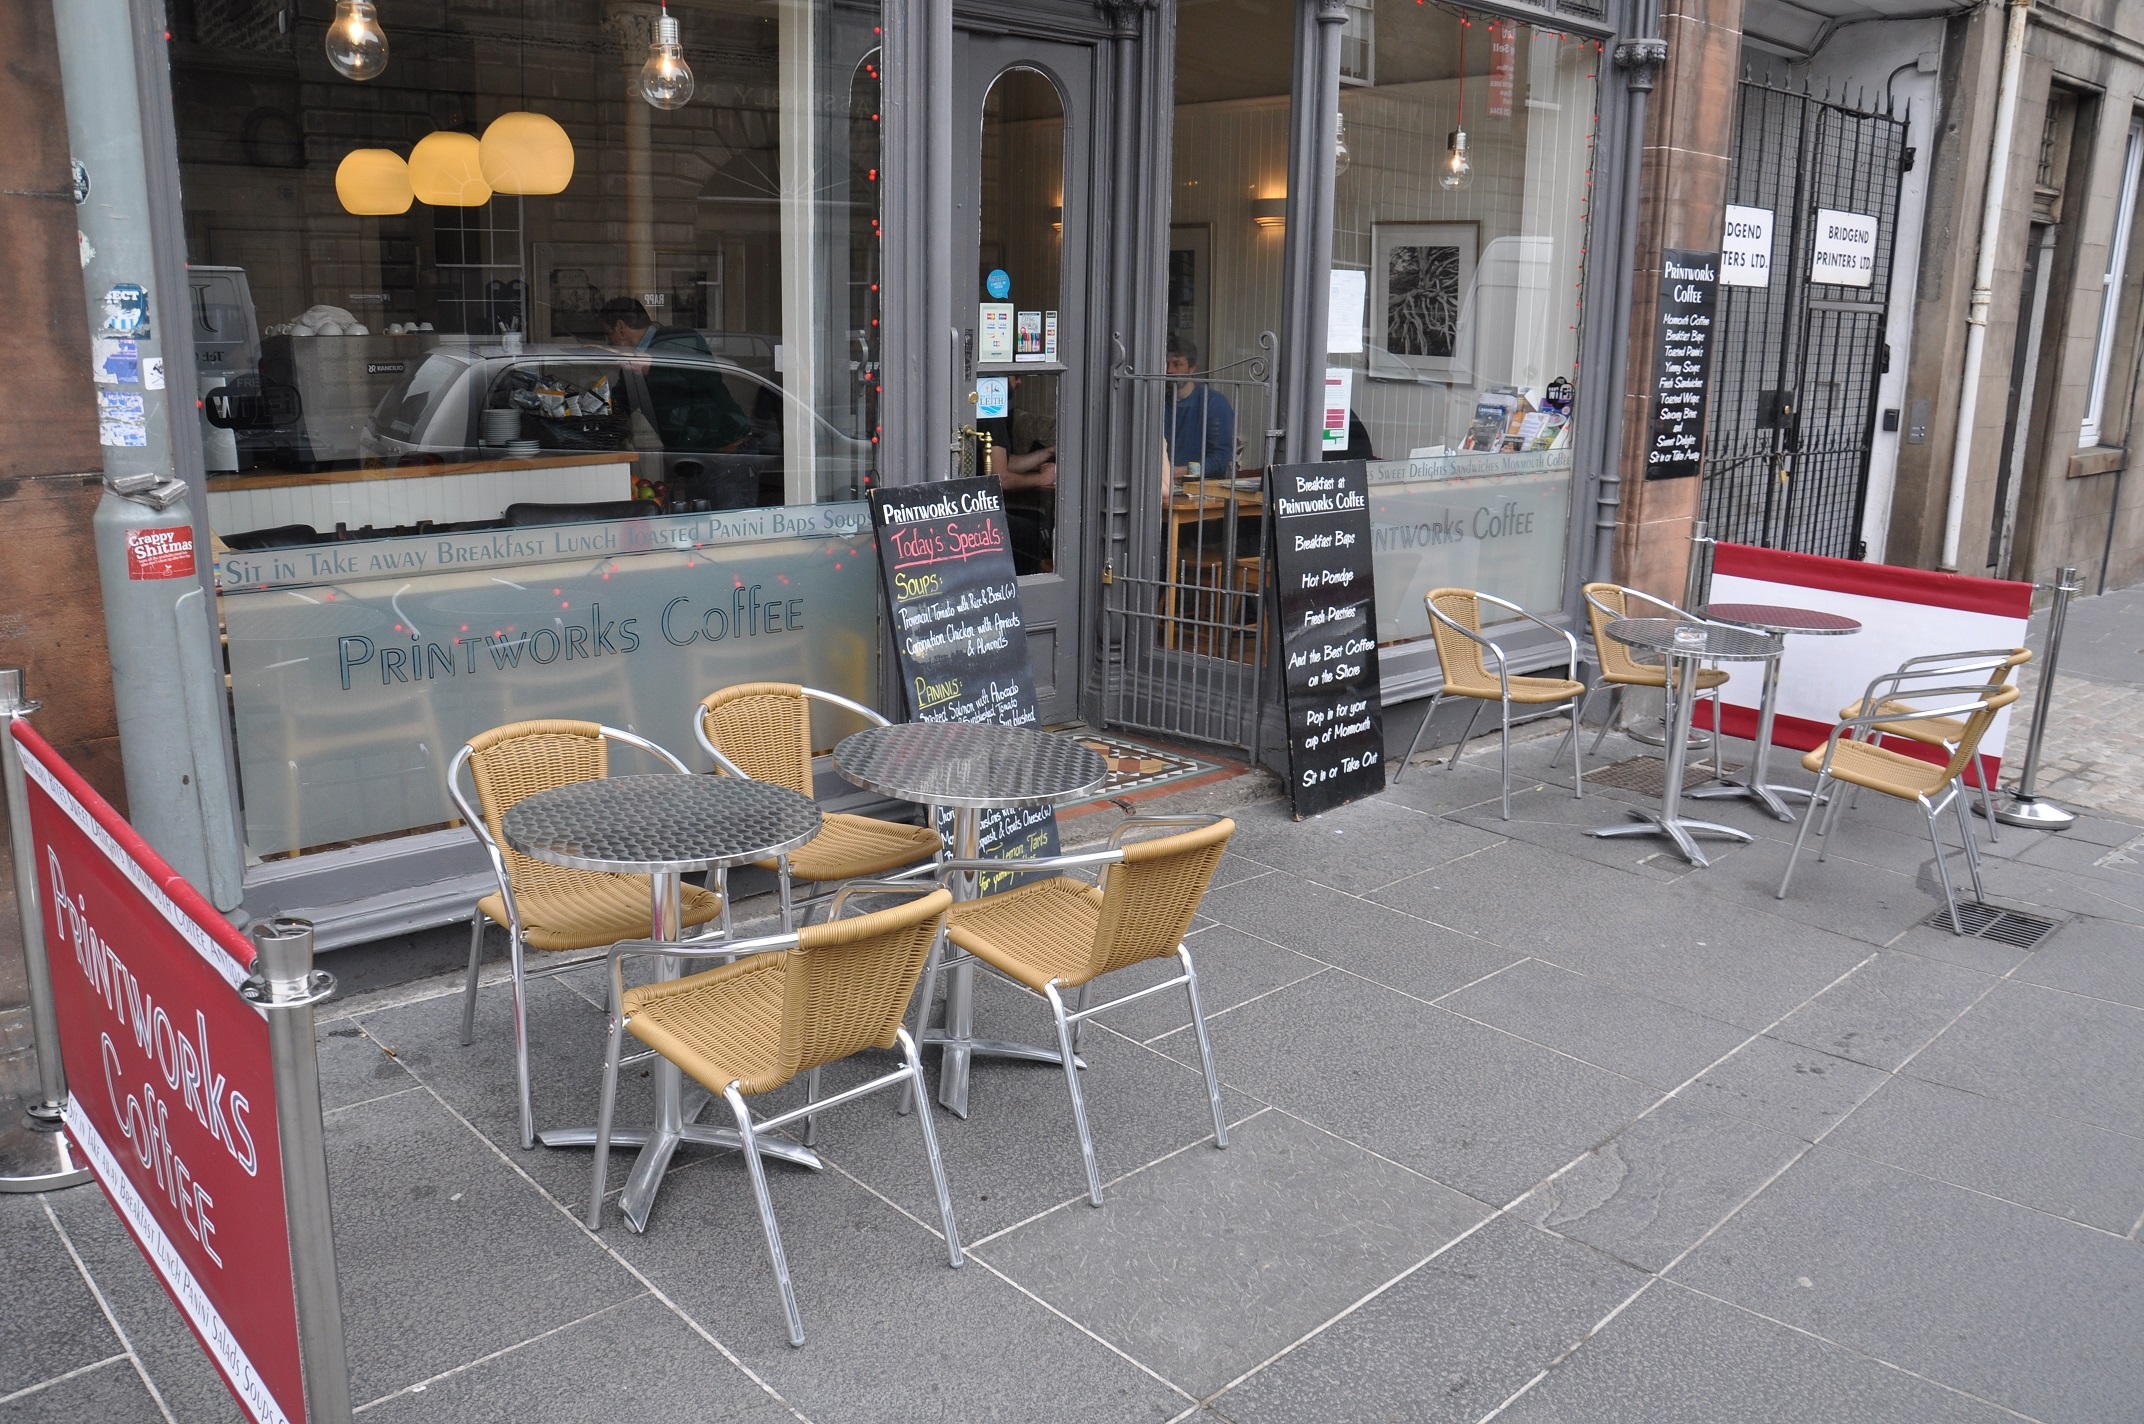 A shot of Printworks Coffee Shop in Leith showing the outside seating on the pavement in front of the shop.